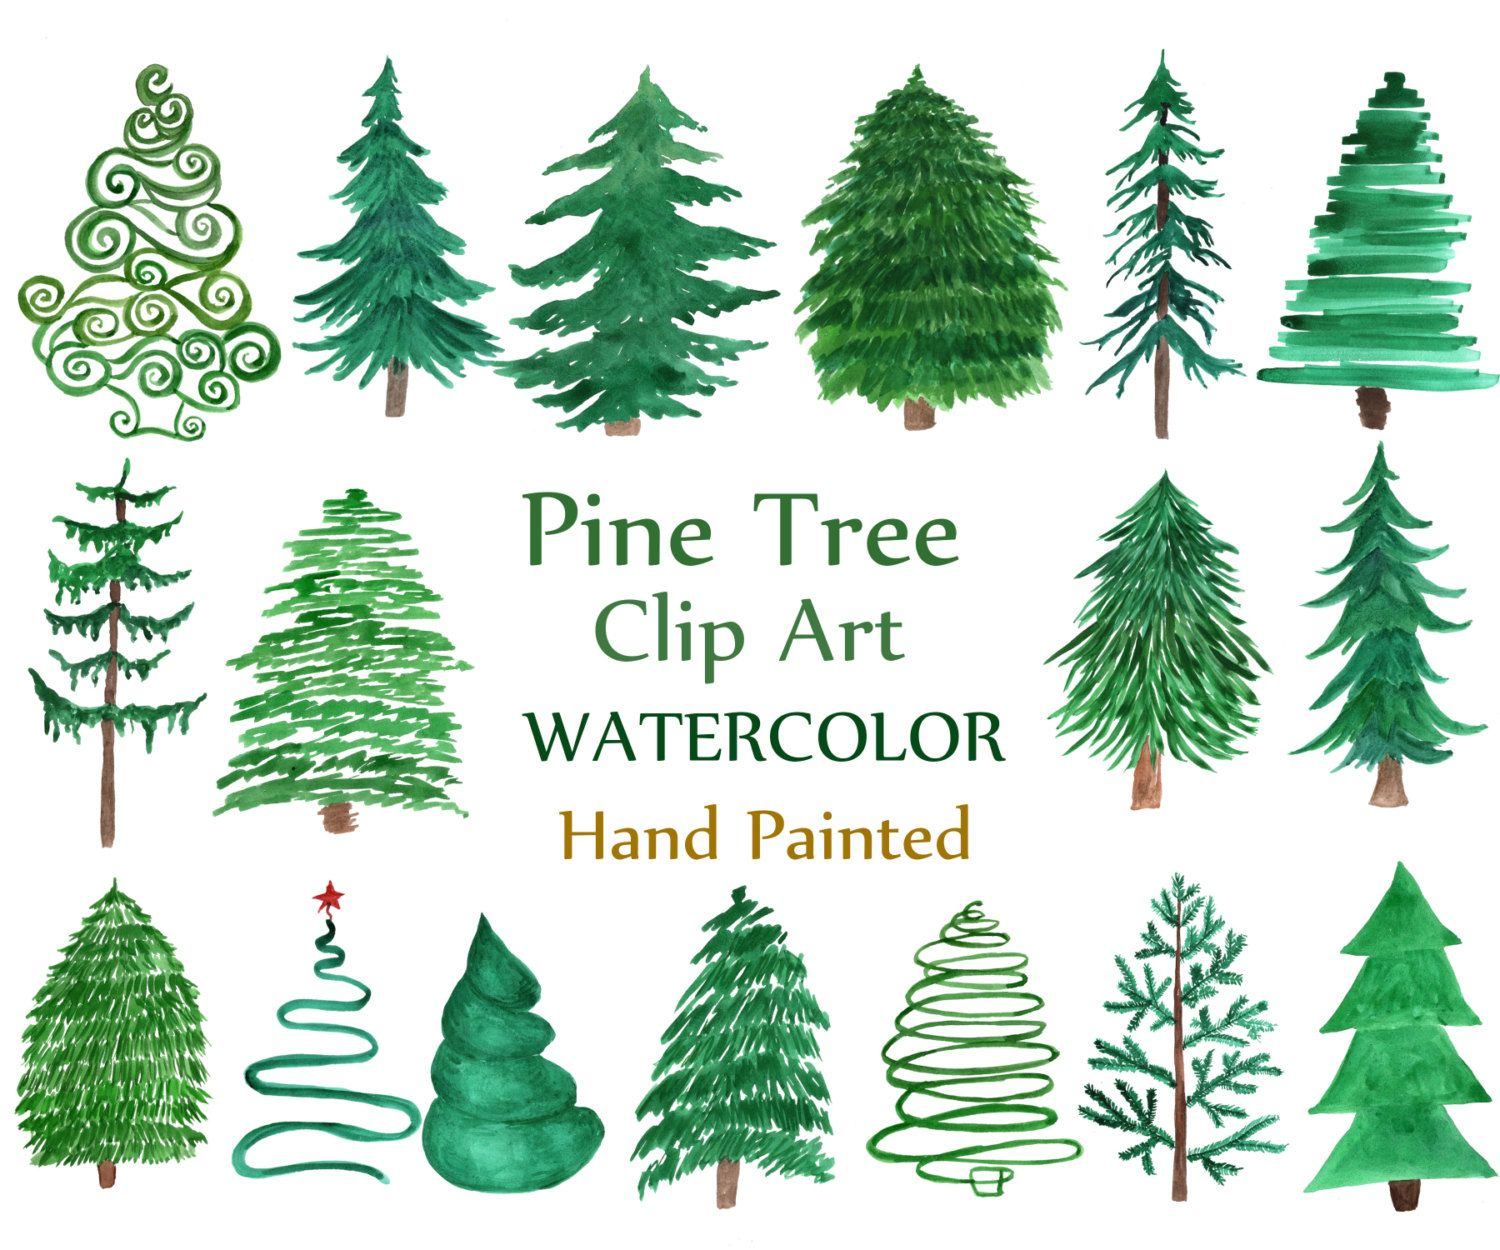 Watercolor Pine Trees Clipart Christmas Tree Etsy In 2020 Christmas Tree Clipart Tree Clipart Christmas Watercolor